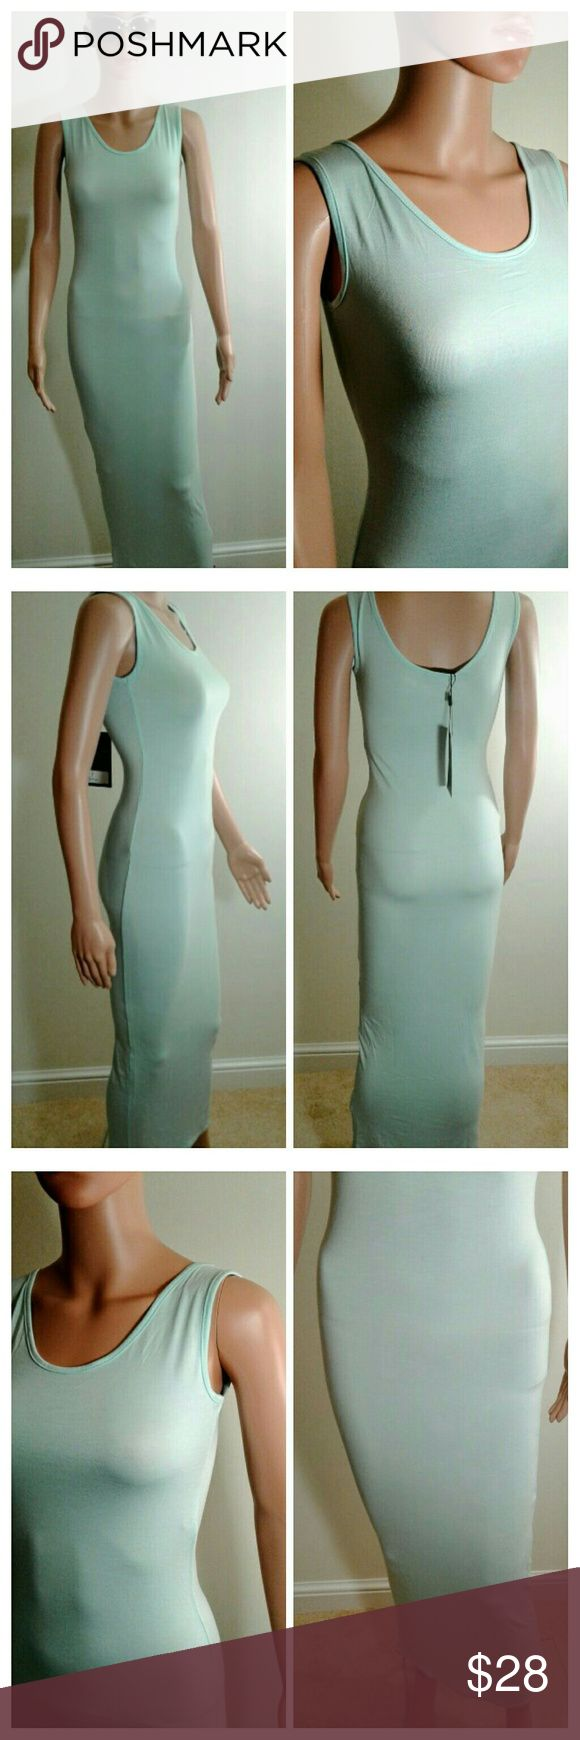 missguided ❤ & Fashion Dress Missguided ❤ & Fashion maxi dress... NWT   * Color: Mint  * 95% Viscose  * 5% Elastane  * (2)Available / Both Size 6 * (1) Mint  (1) Cream  PRICE TO SALE if you are interested in the cream it is posted separately.. missguided ❤Fashion  Dresses Midi